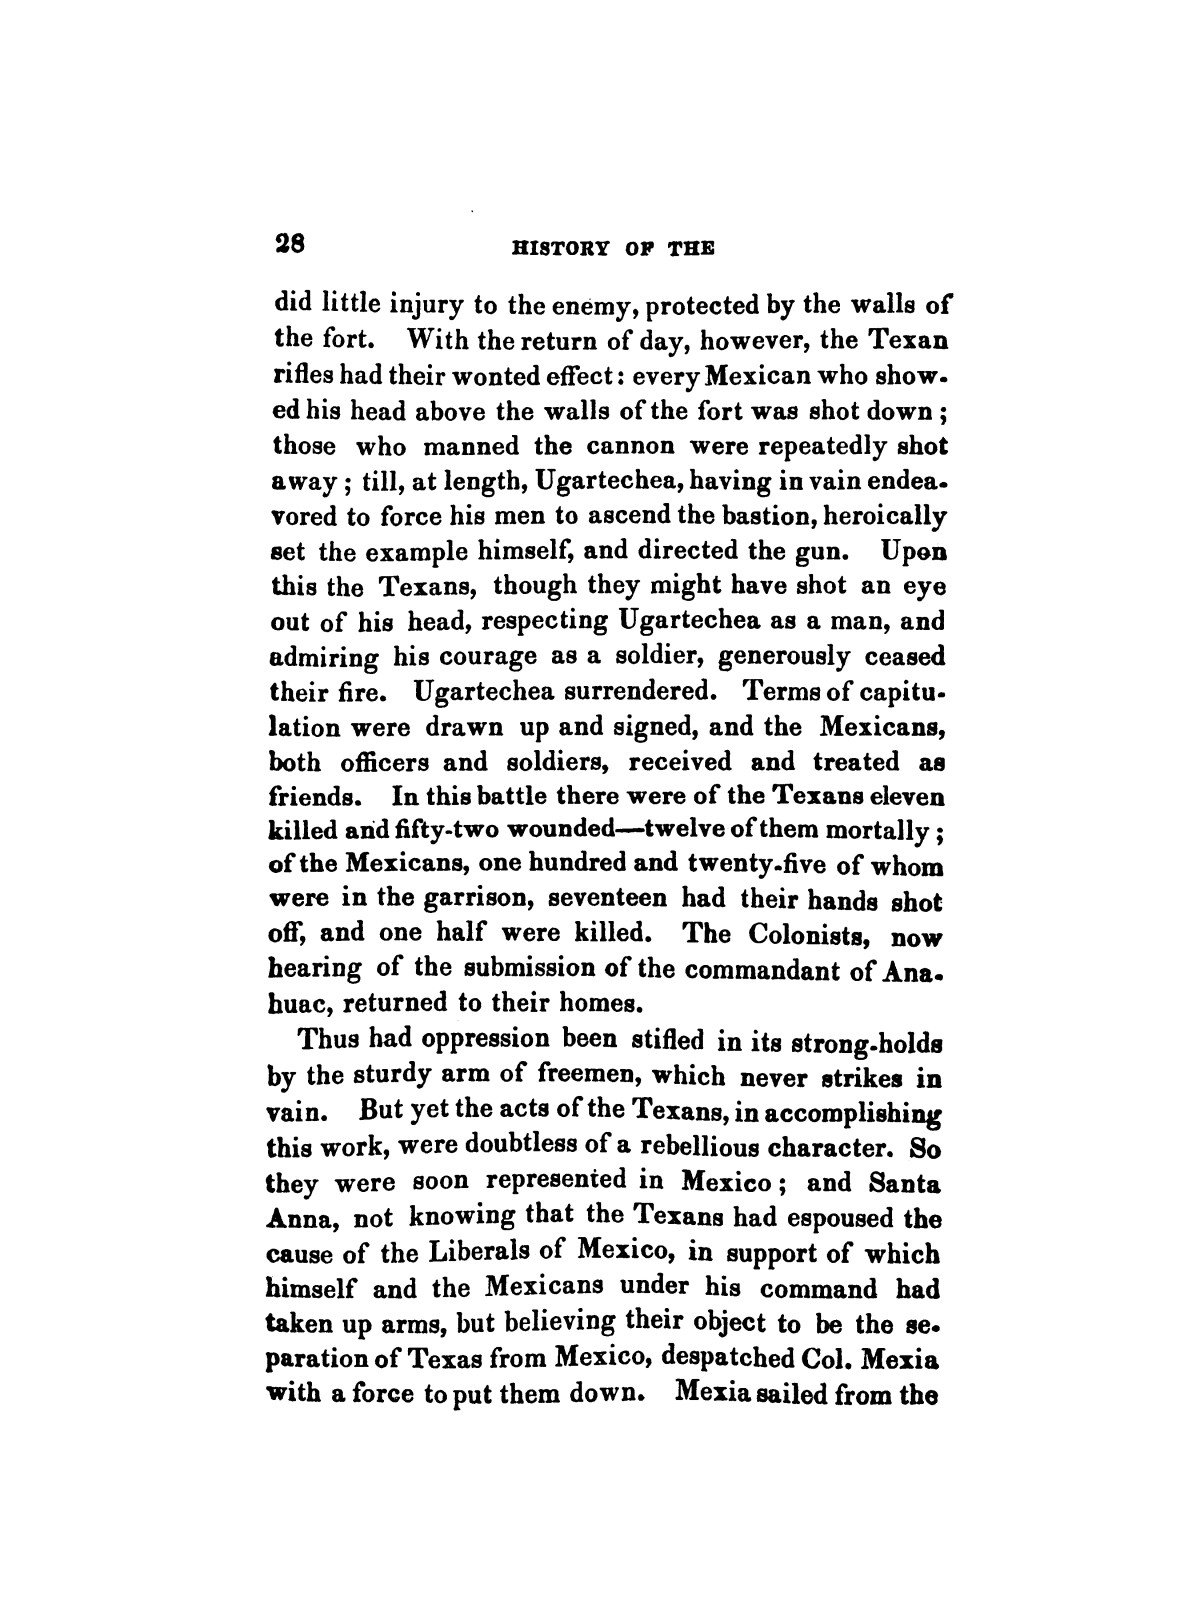 History of the revolution in Texas, particularly of the war of 1835 & '36; together with the latest geographical, topographical, and statistical accounts of the country, from the most authentic sources. Also, an appendix. By the Rev. C. Newell.                                                                                                      [Sequence #]: 40 of 227